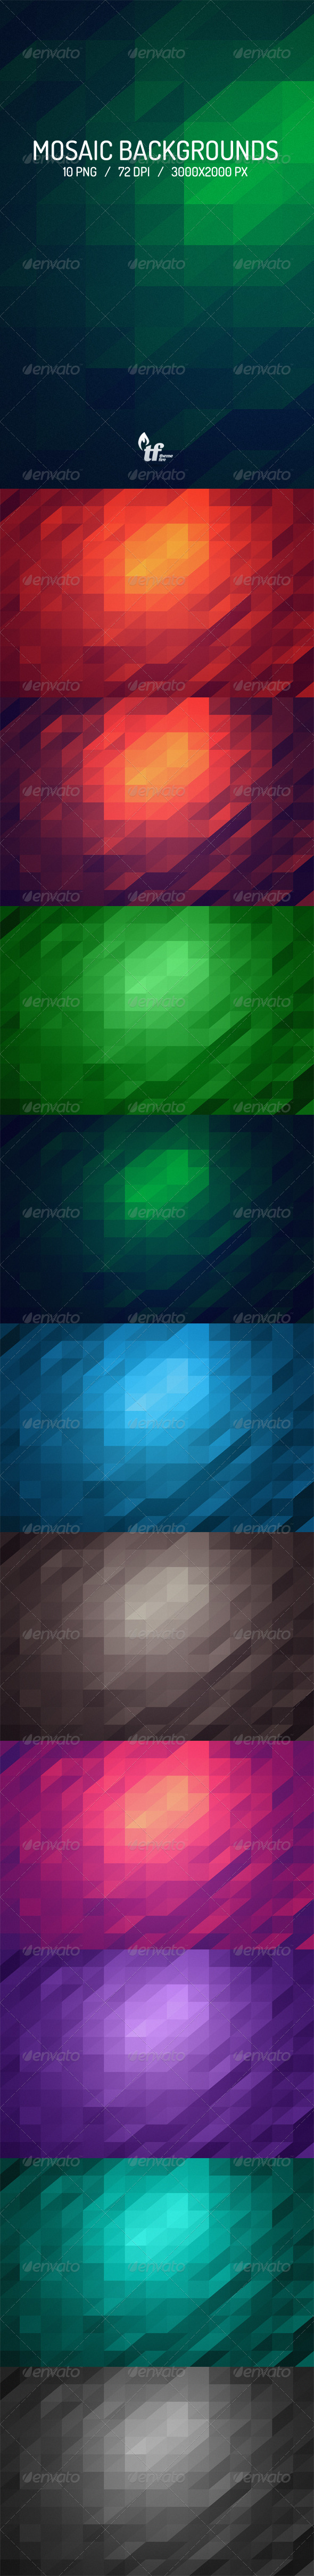 GraphicRiver Mosaic Backgrounds 6923424